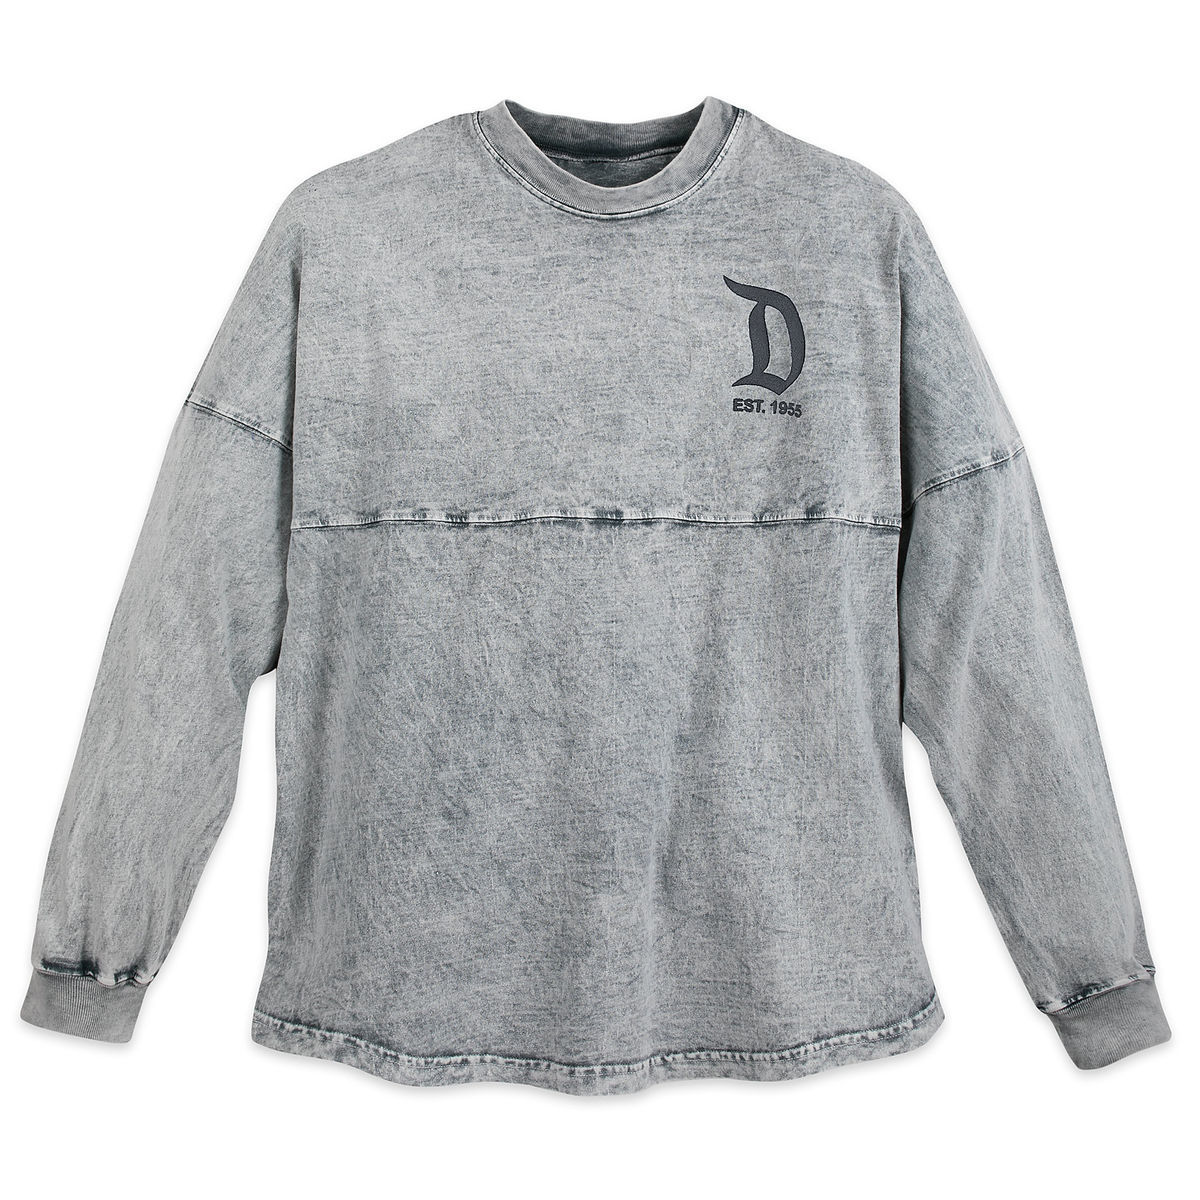 Product Image of Disneyland Mineral Wash Spirit Jersey for Adults - Gray   1 031060be9228